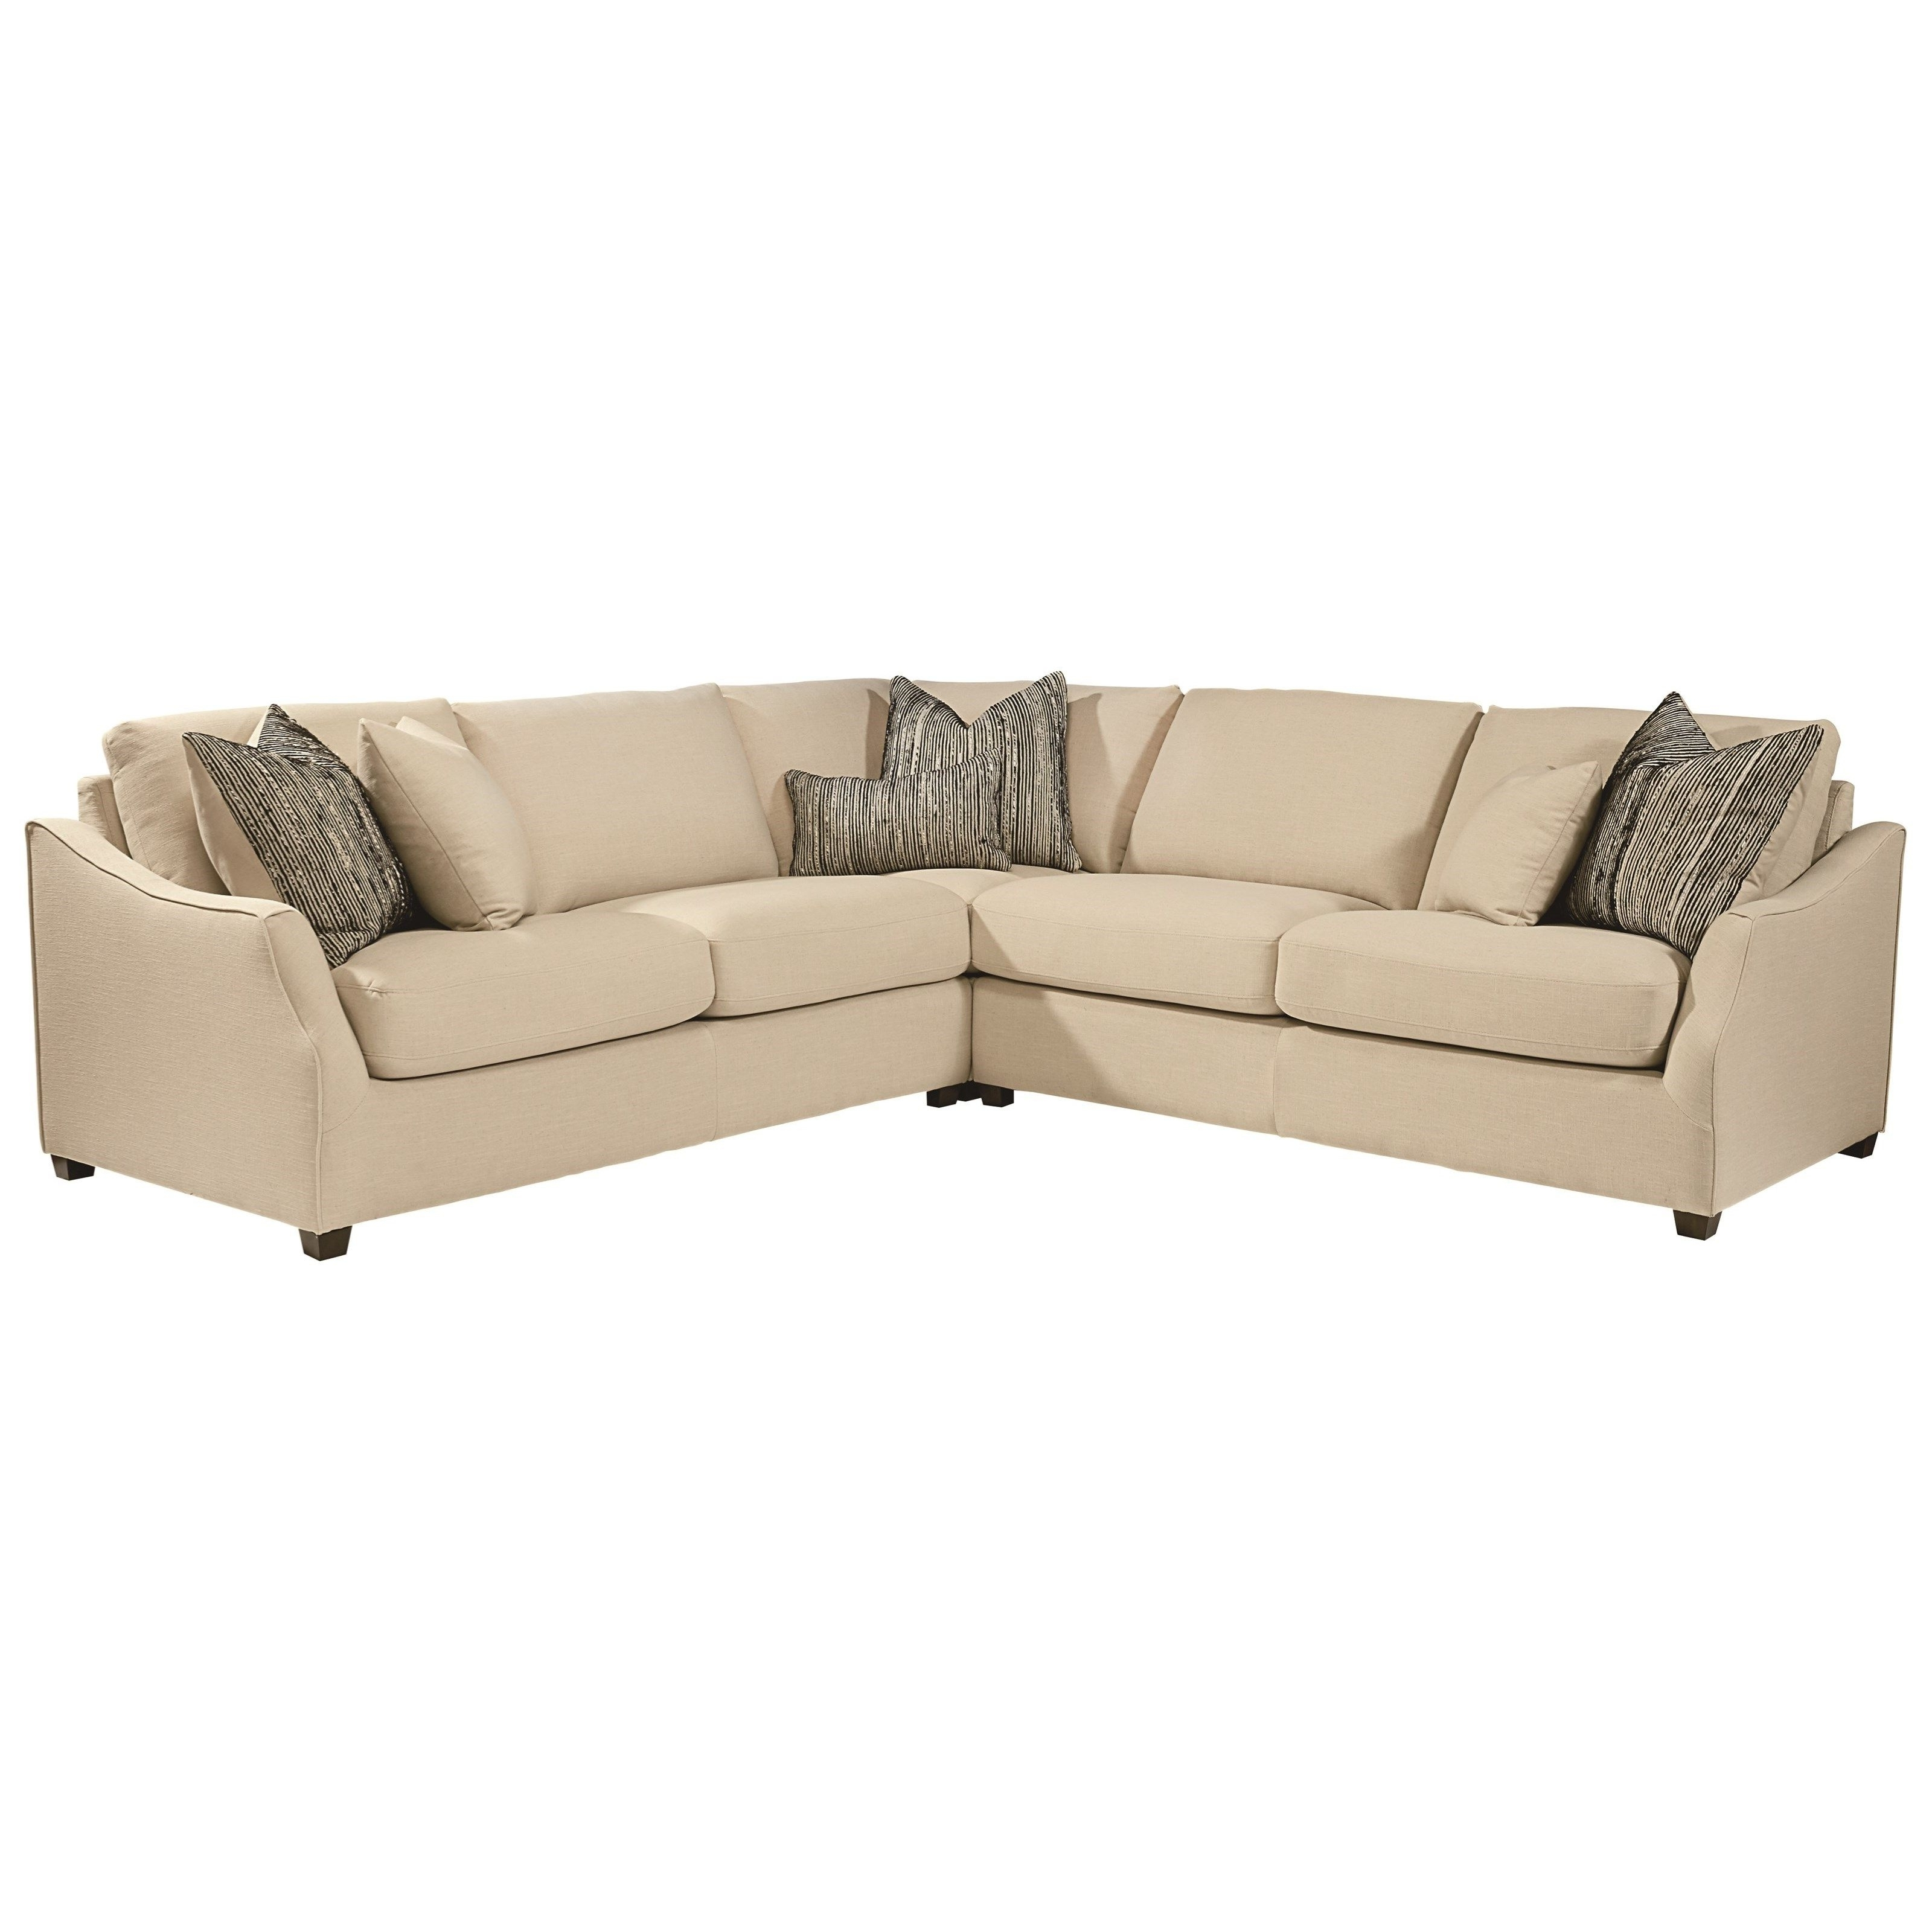 Magnolia Homejoanna Gaines Homestead Three Piece Sectional In Well Liked Minneapolis Sectional Sofas (View 4 of 15)